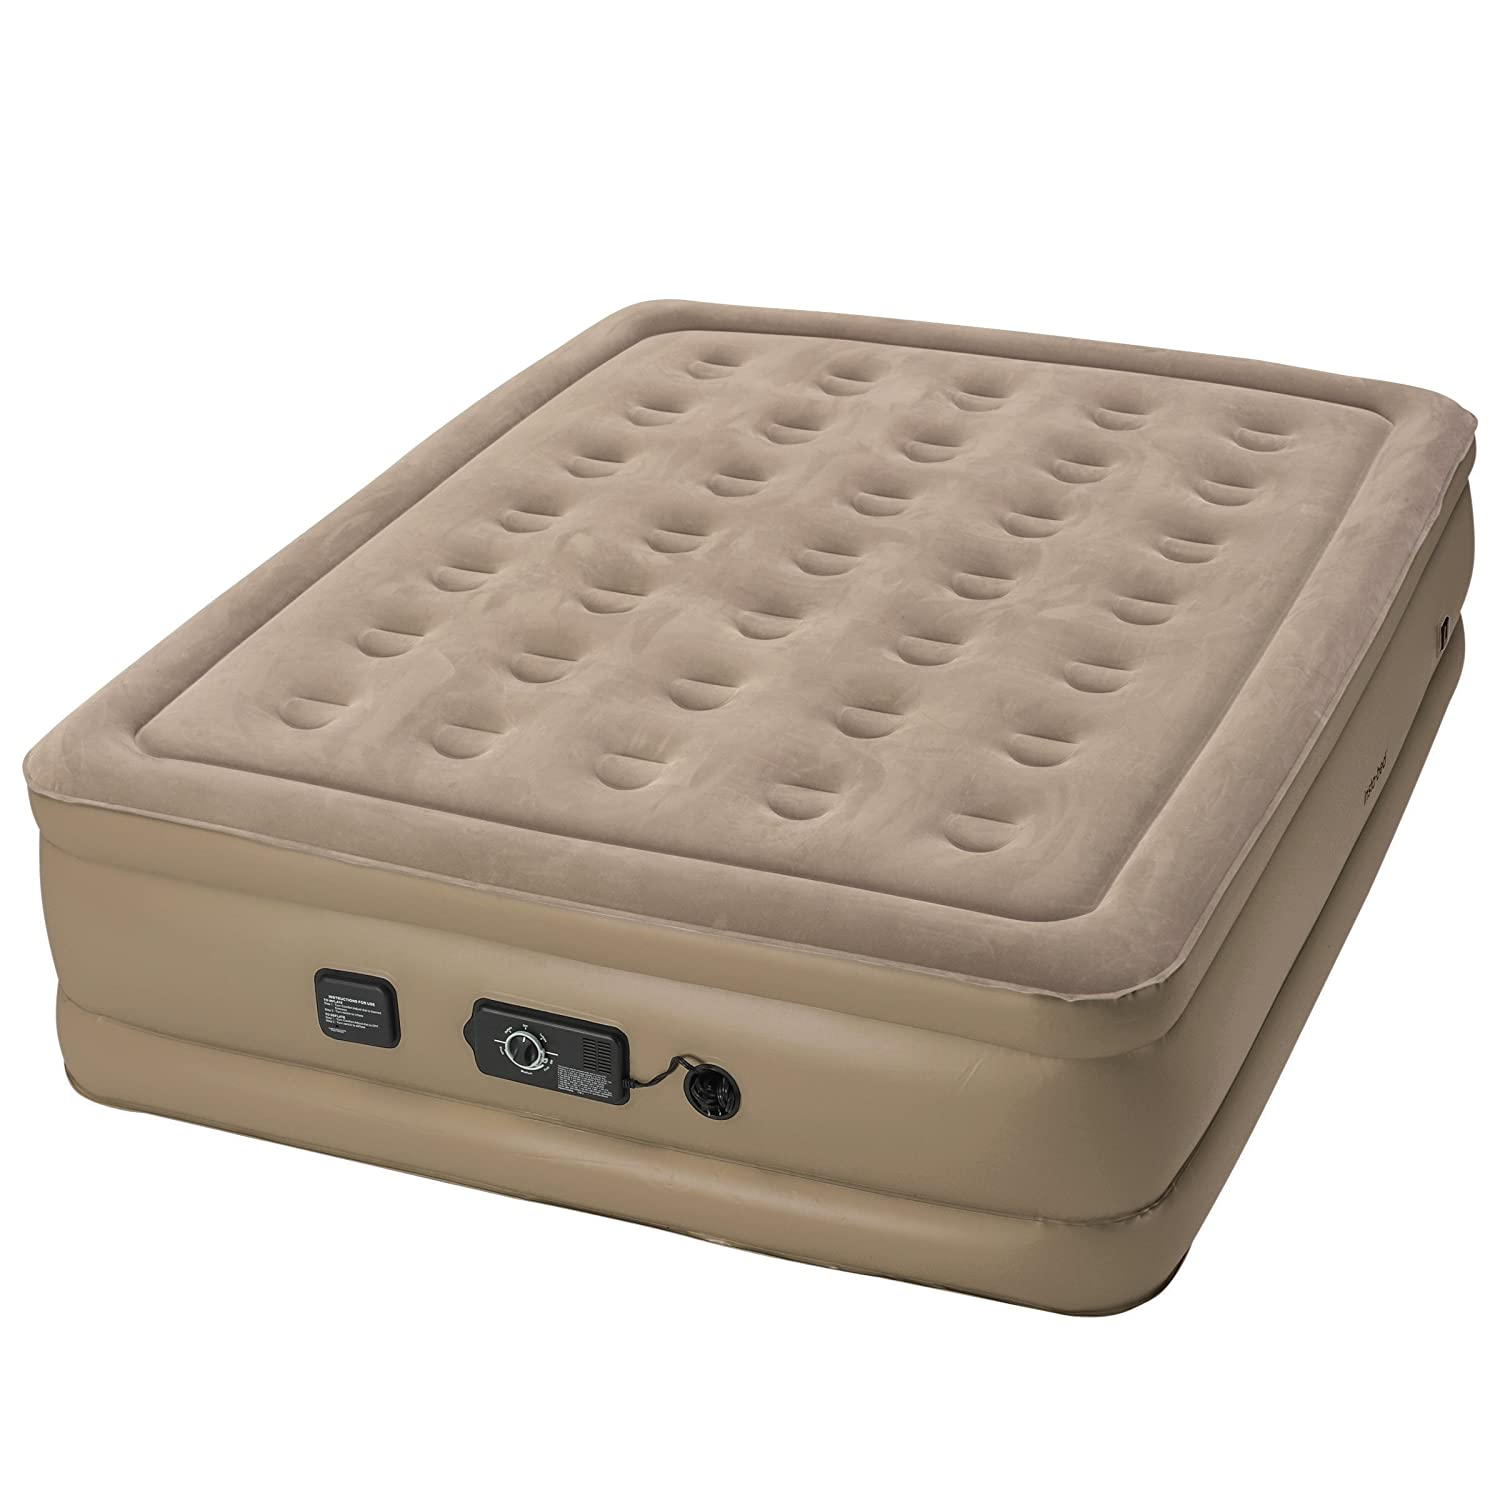 Insta-Bed Raised Air Mattress with Never Flat Pump Grey Queen Wenzel Company 840017G